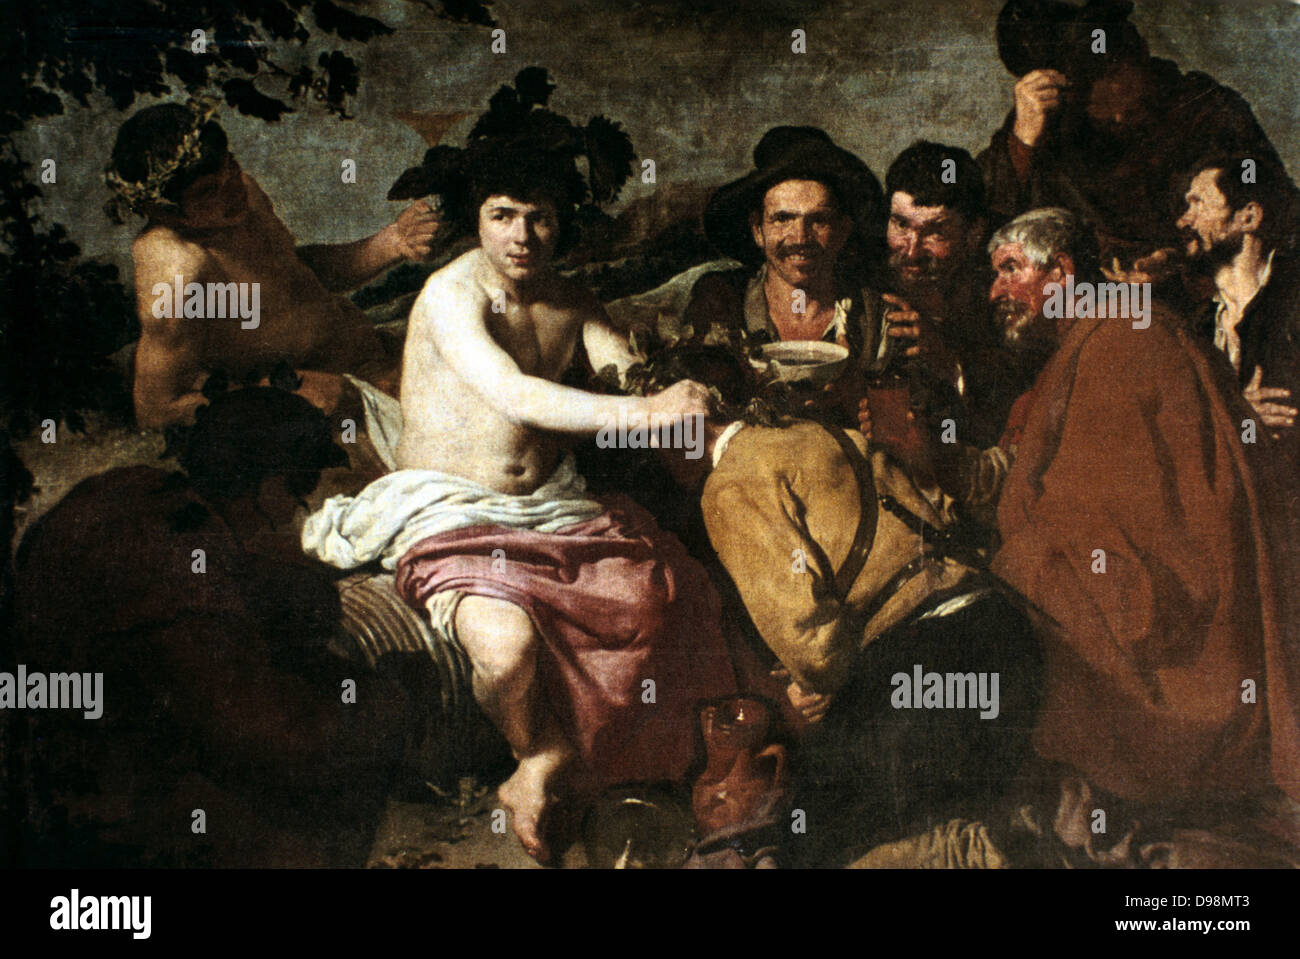 Feast of Bacchus' also called 'The Drinkers'. Diego Velasquez (1599-1660) Spanish painter. Dionysius, in Greek mythology Stock Photo